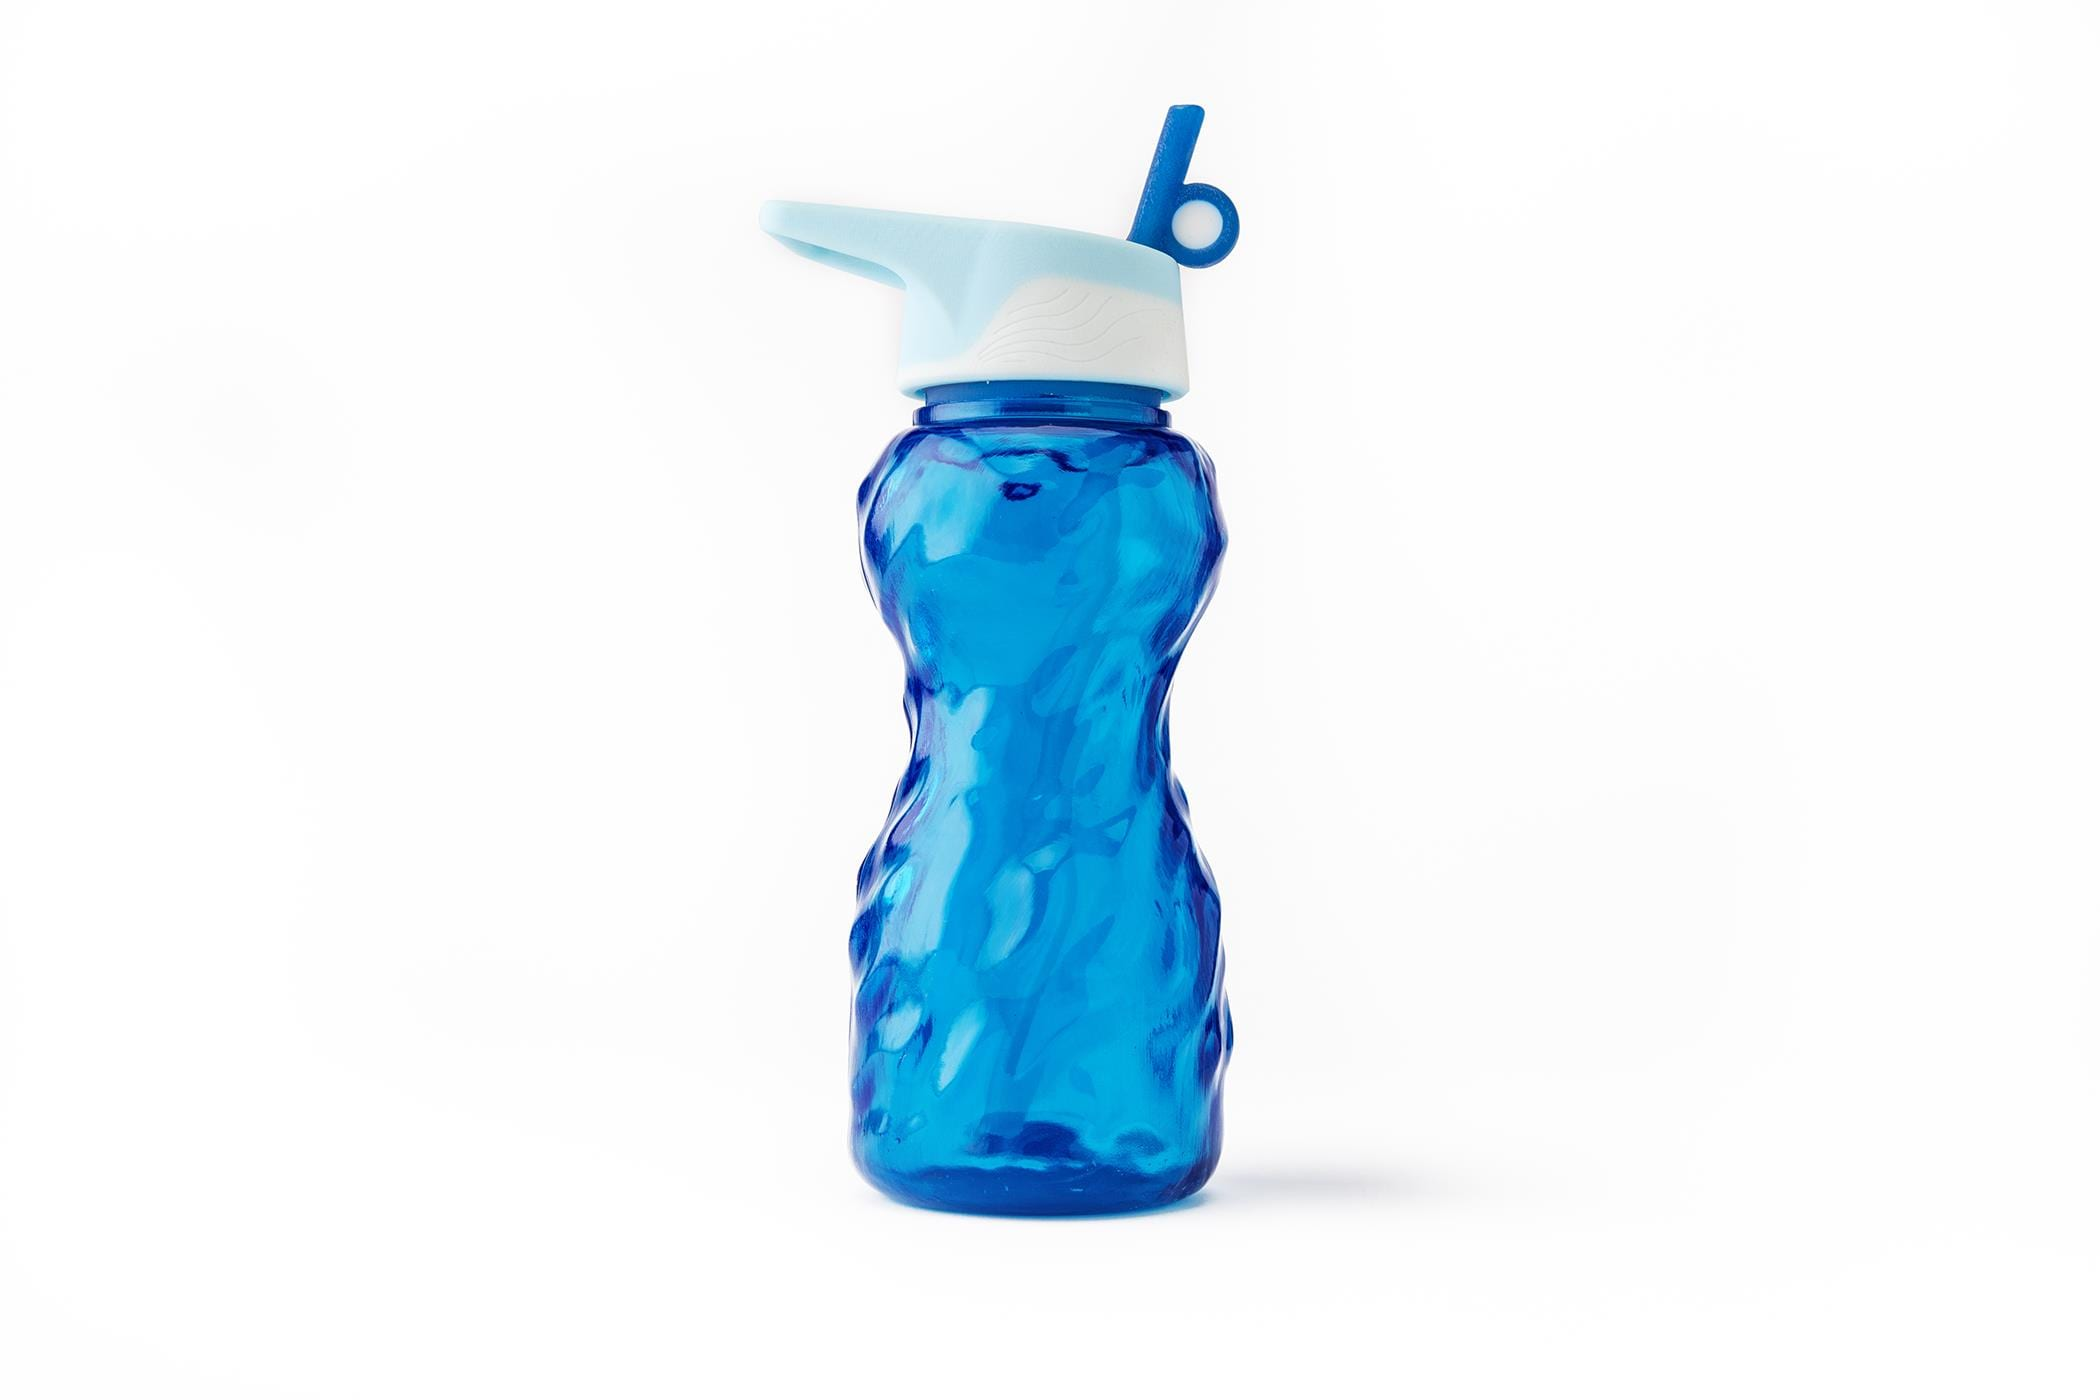 VeroCyan Waterbottle Full Color 3d Printing Stratasys